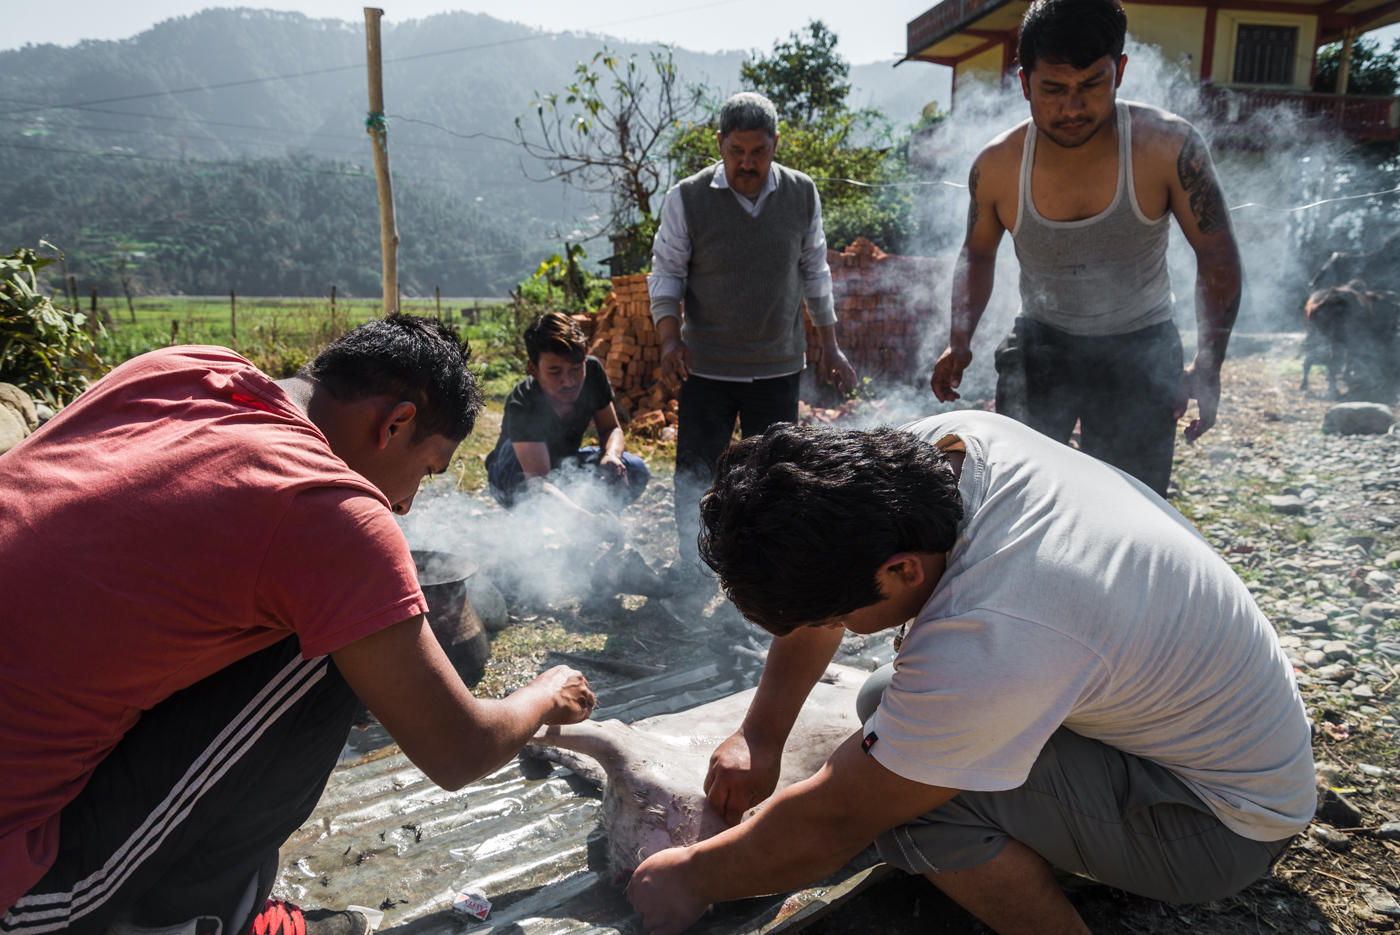 A family processes their goat shortly after slaughter in a rural village in central Nepal.